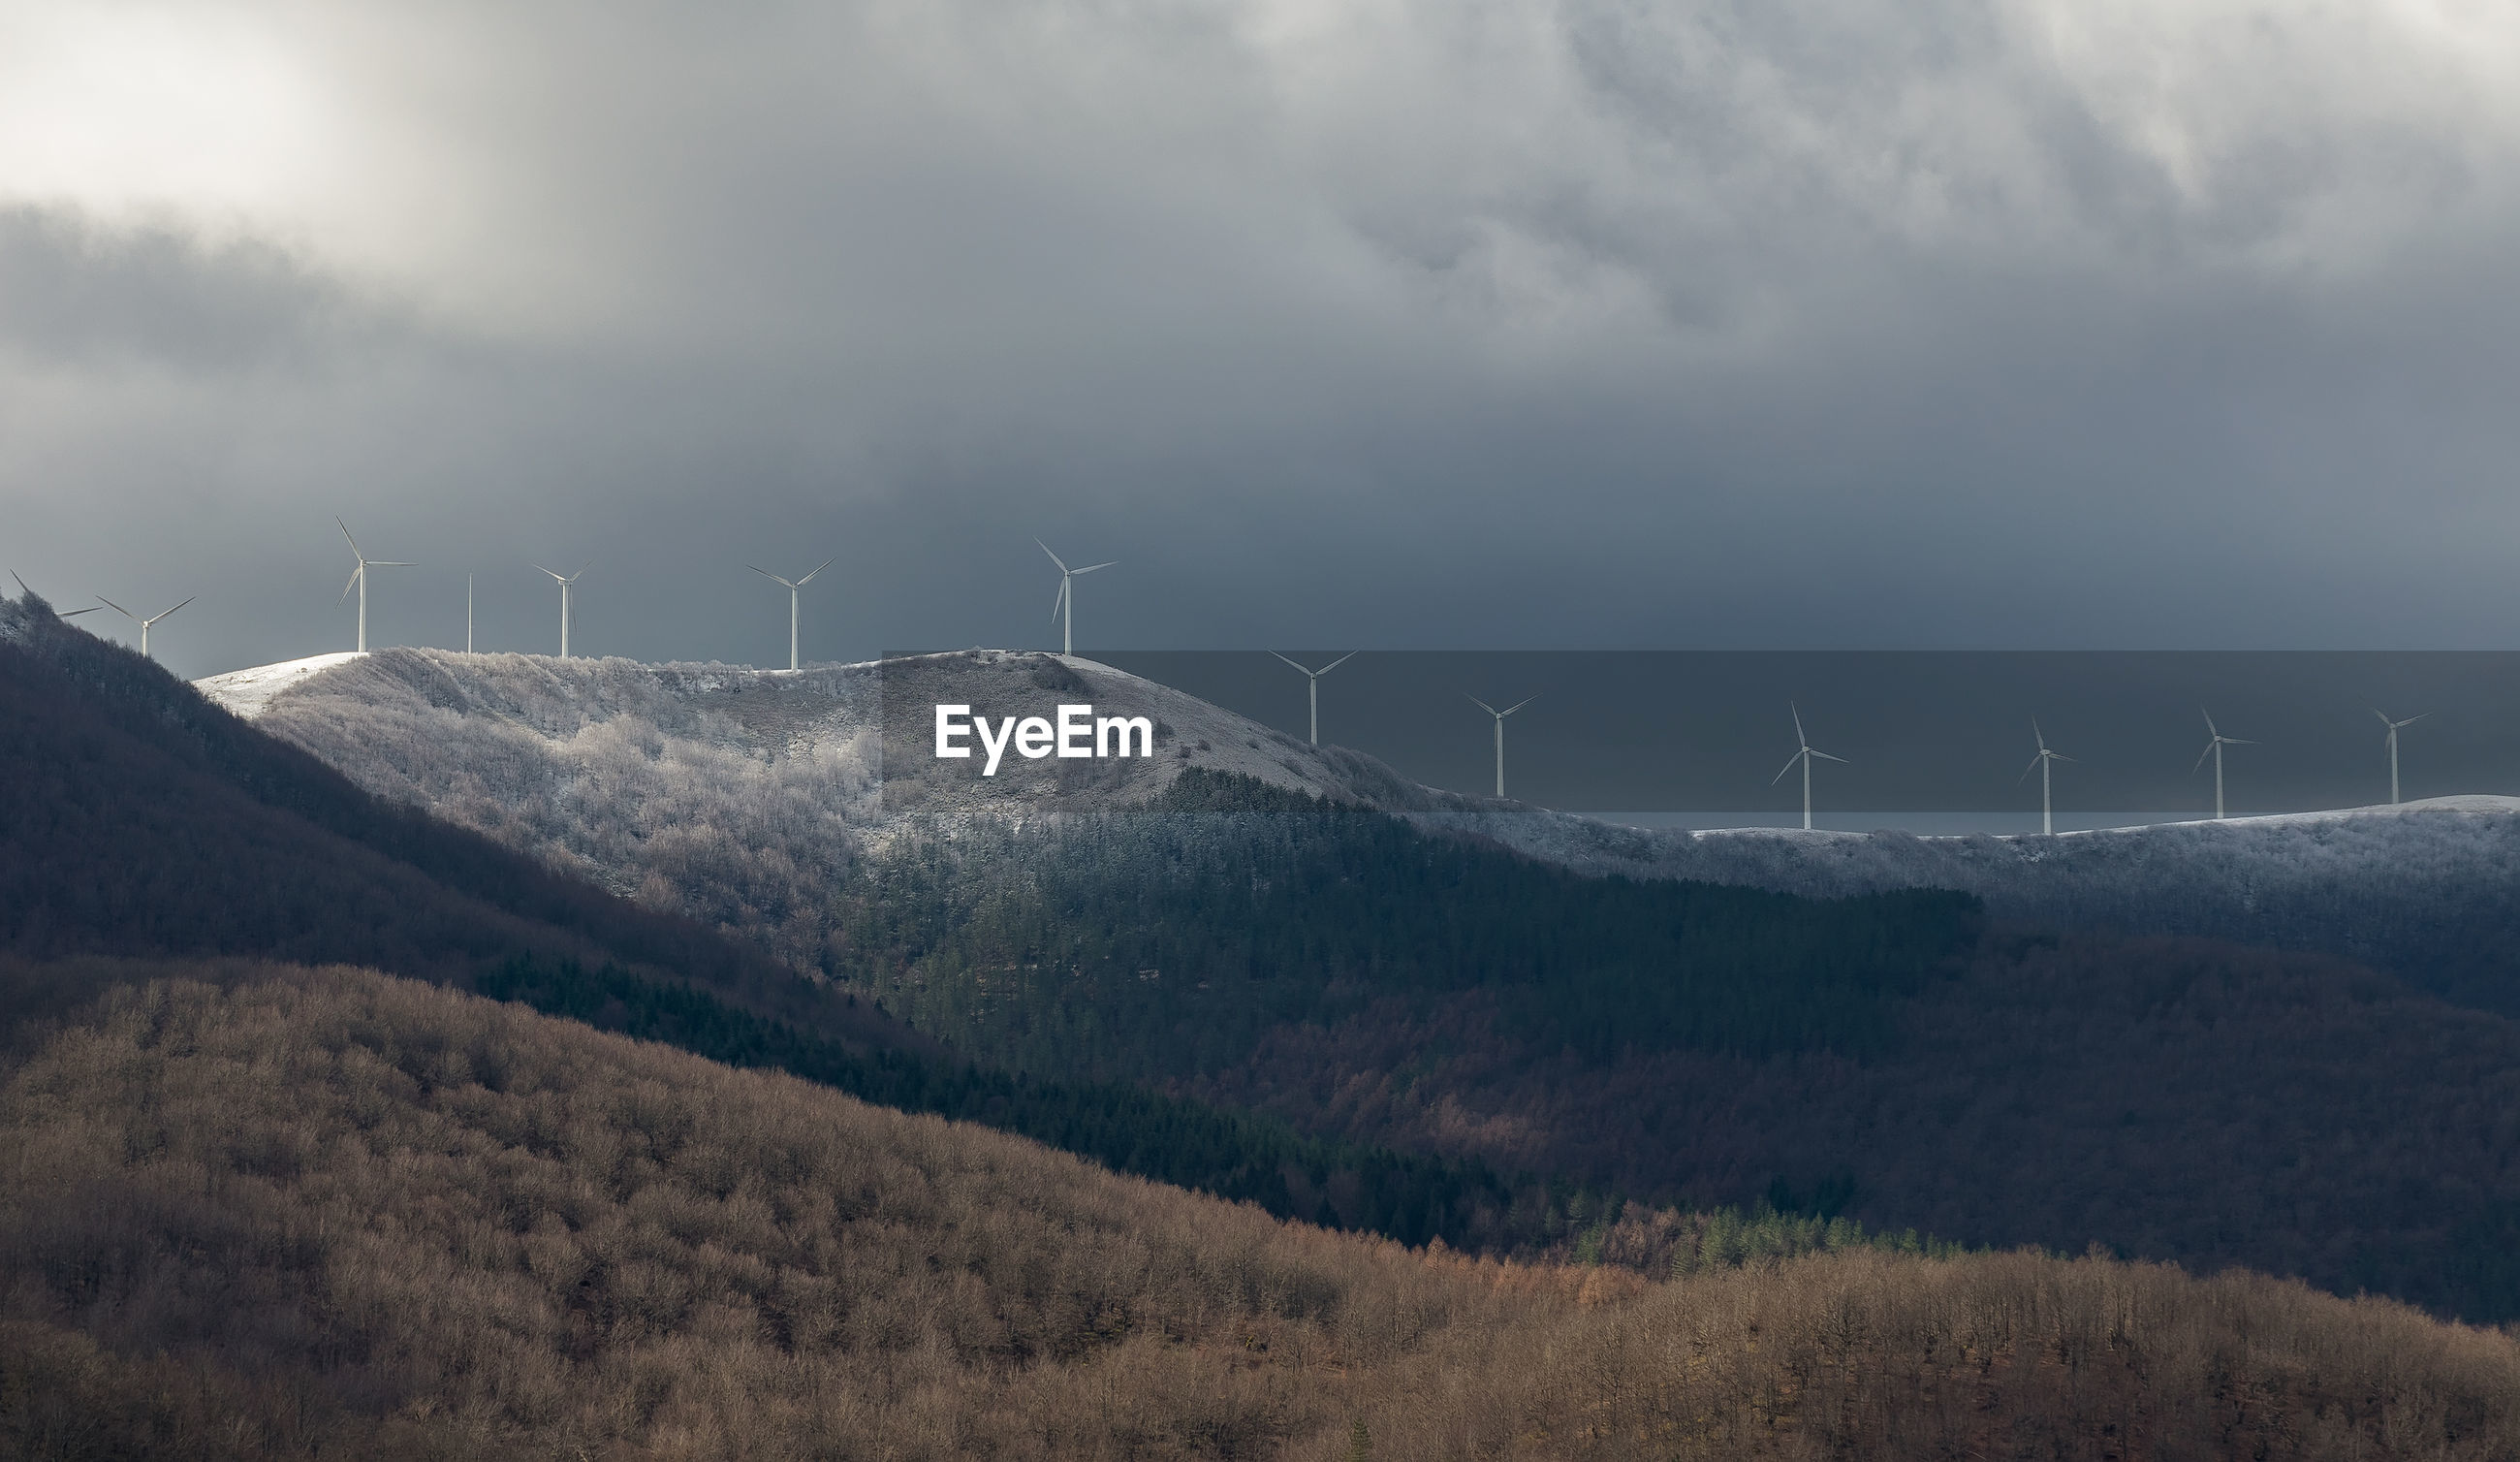 PANORAMIC VIEW OF WIND TURBINES ON LAND